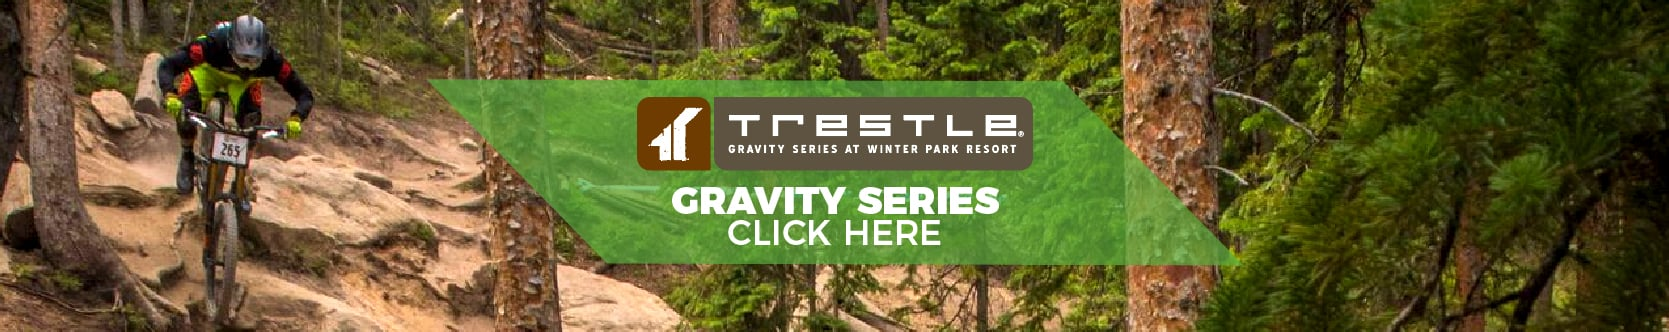 trestle gravity series